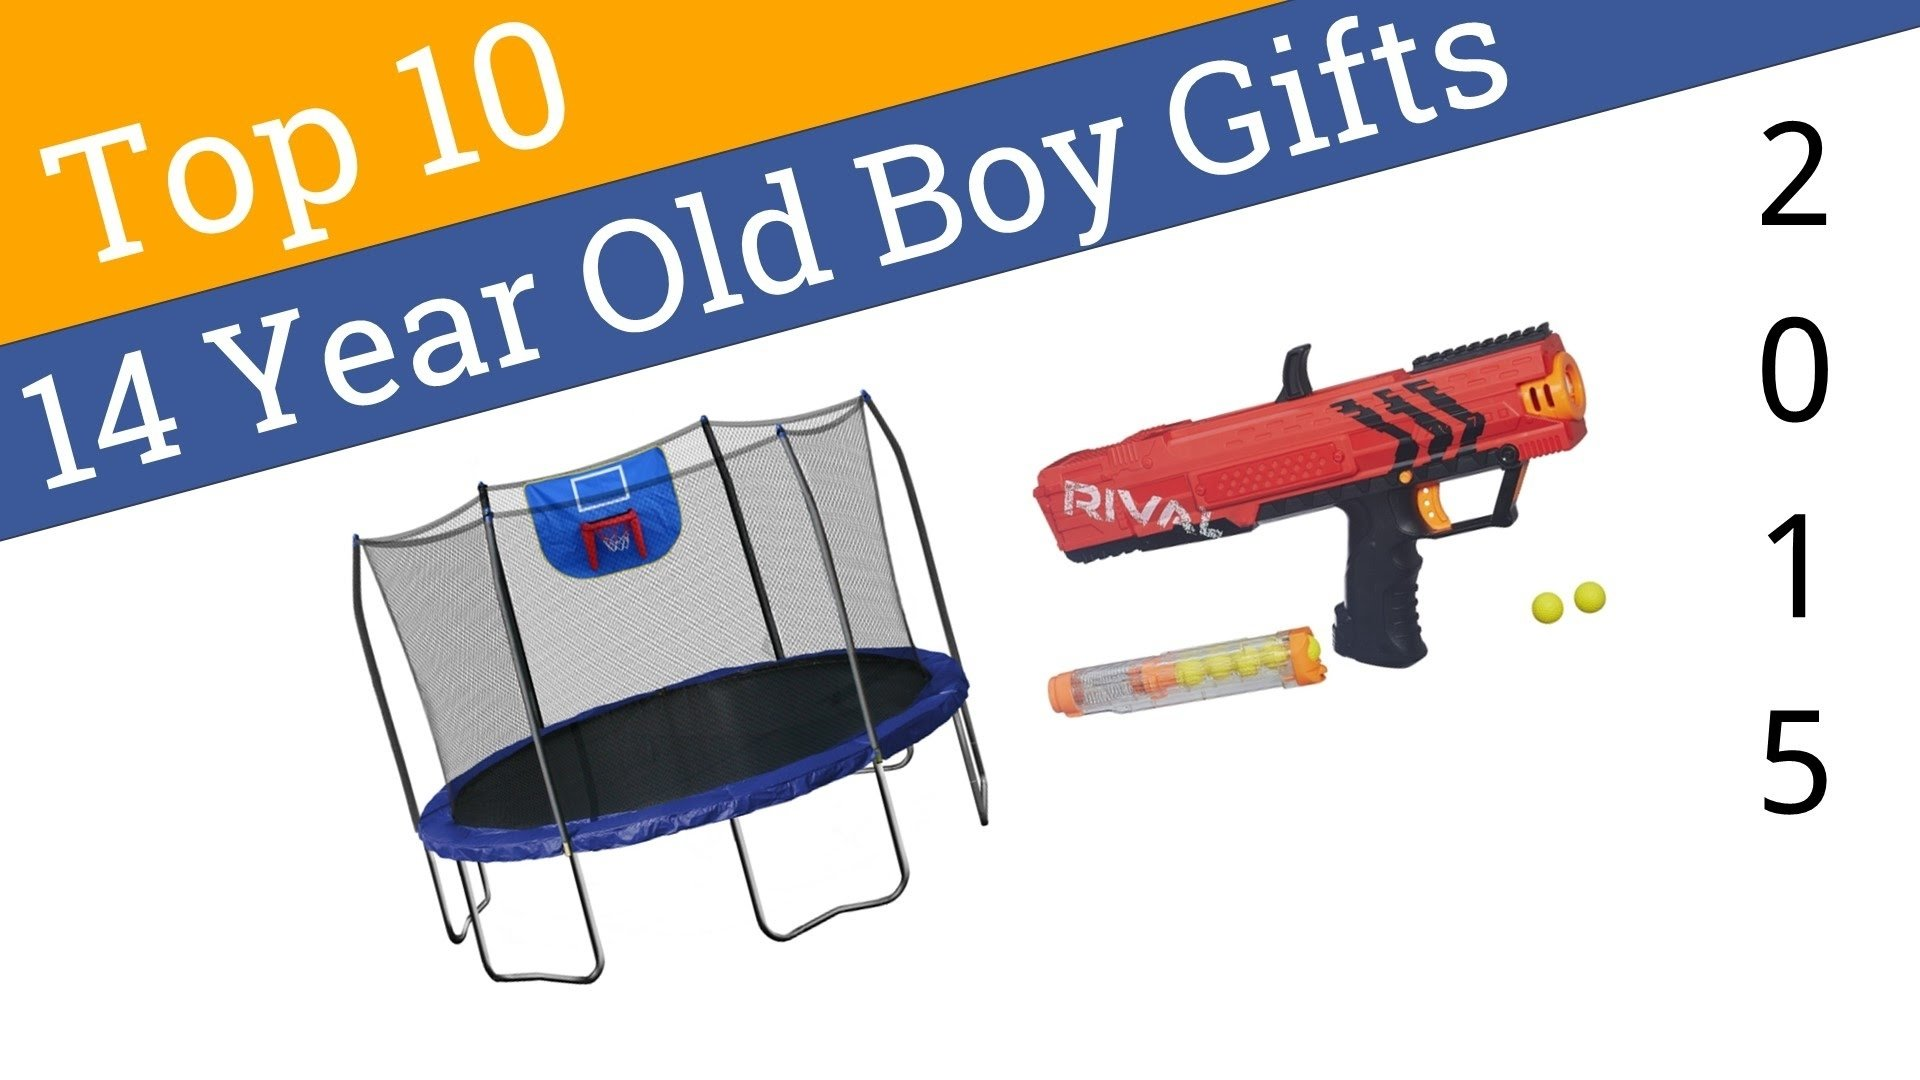 10 Nice 14 Year Old Gift Ideas 10 best 14 year old boy gifts 2015 youtube 2021